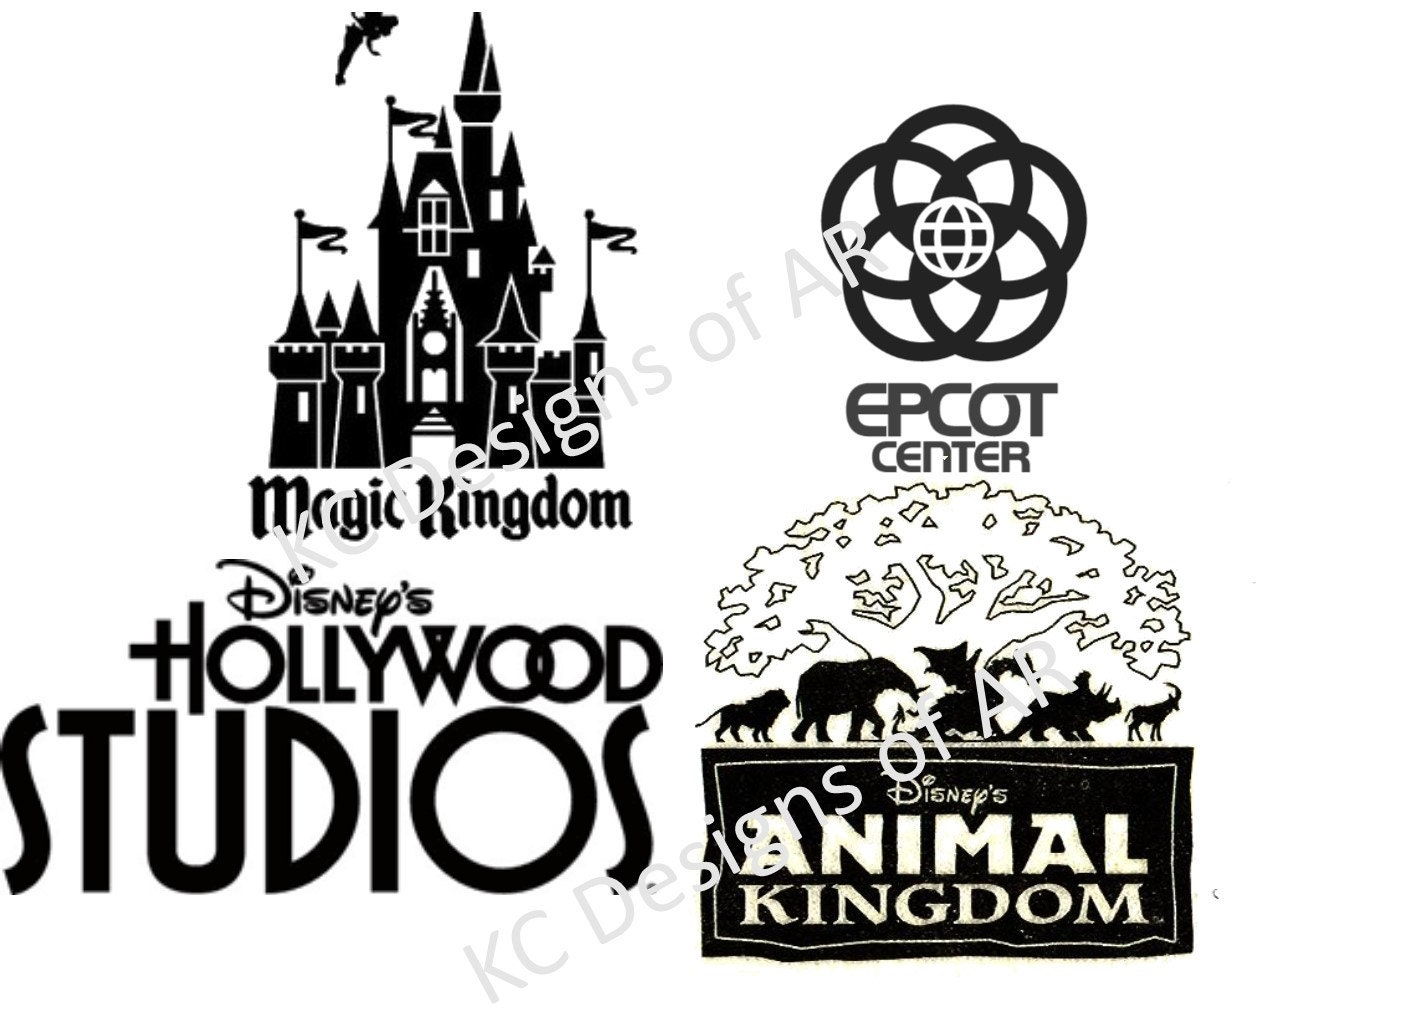 161285230384588340 furthermore Craft Silhouette besides Svg Disney Toy Story Buzz Woody Youve additionally 116178865362765867 as well Walt Disney World Park Logos Svg Files. on disney world silhouettes